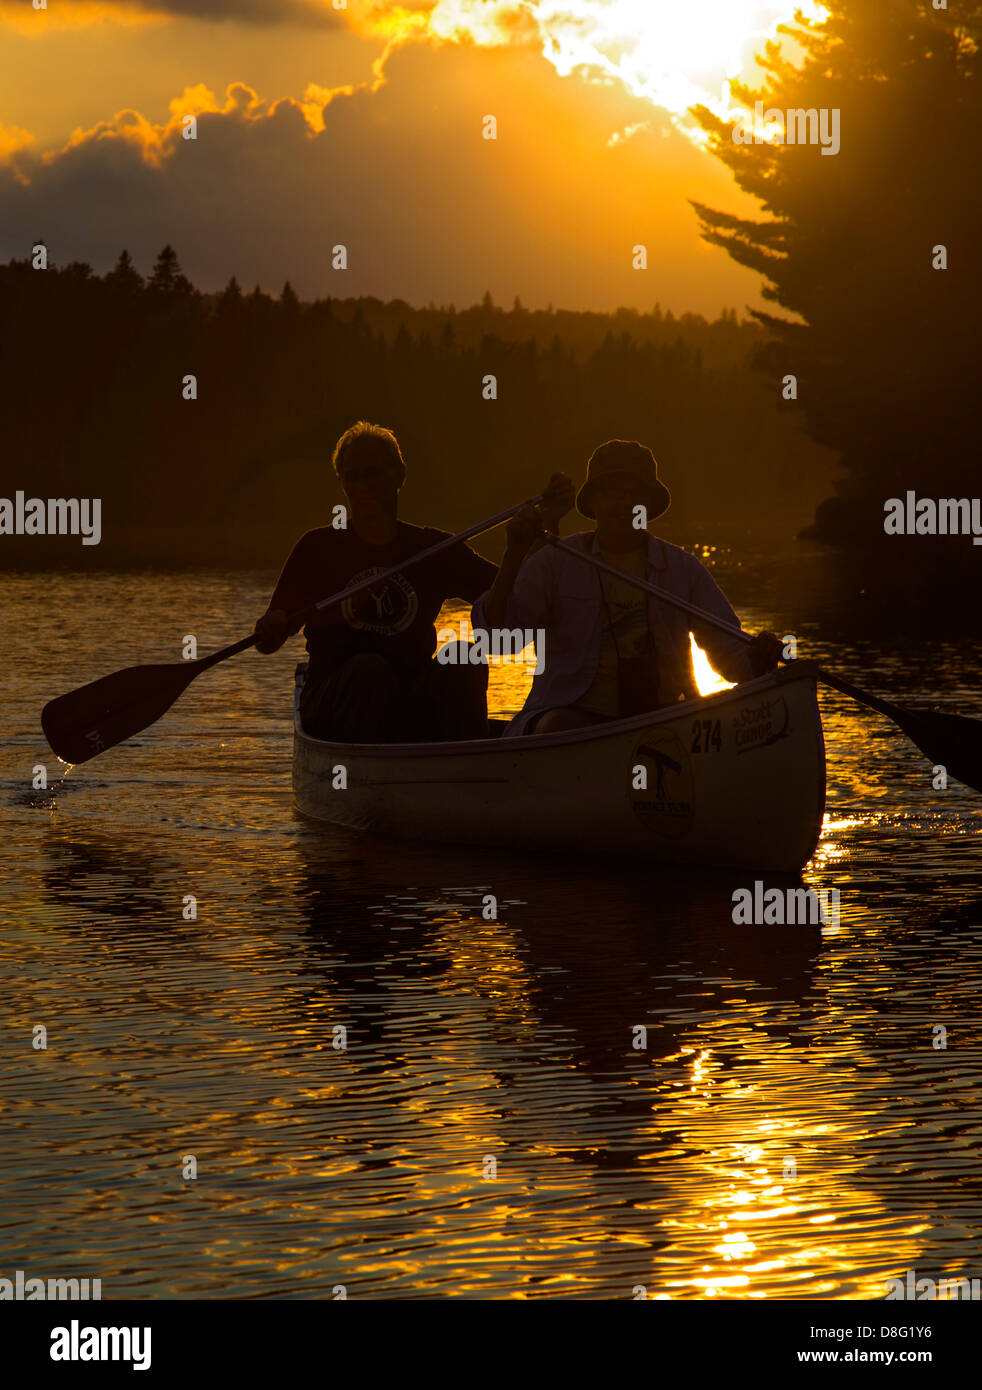 Algonquin Provincial Park, Ontario Canada - A canoe at sunset on Tom Thomson Lake. - Stock Image